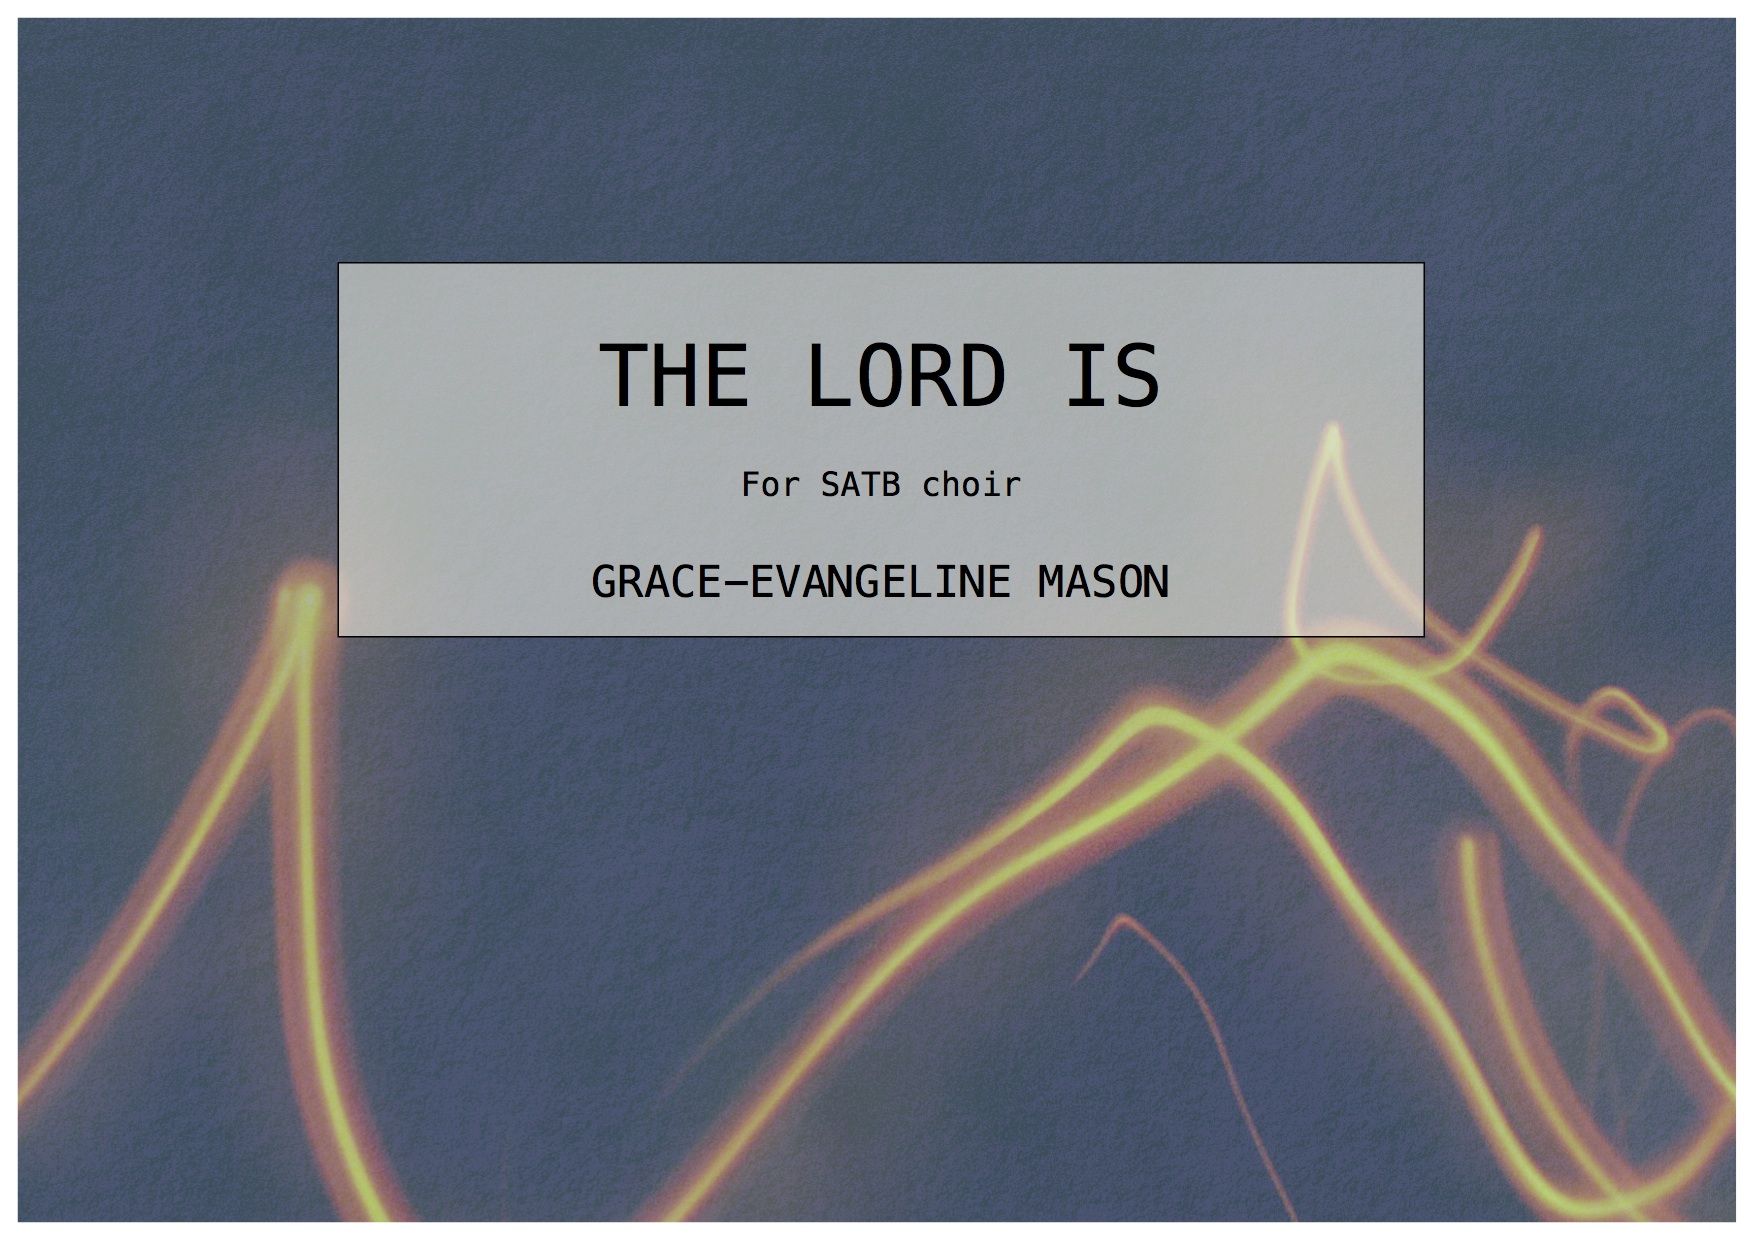 'The Lord Is' (2015) - for SATB choirDuration: 4'First performed by the Sarum Consort in the London Festival of Contemporary Church Music (13/05/17)A setting of PSALM 93:1-4 (NRSV)©Cover Image: 'The Lord Is' by Grace-Evangeline Mason 2015